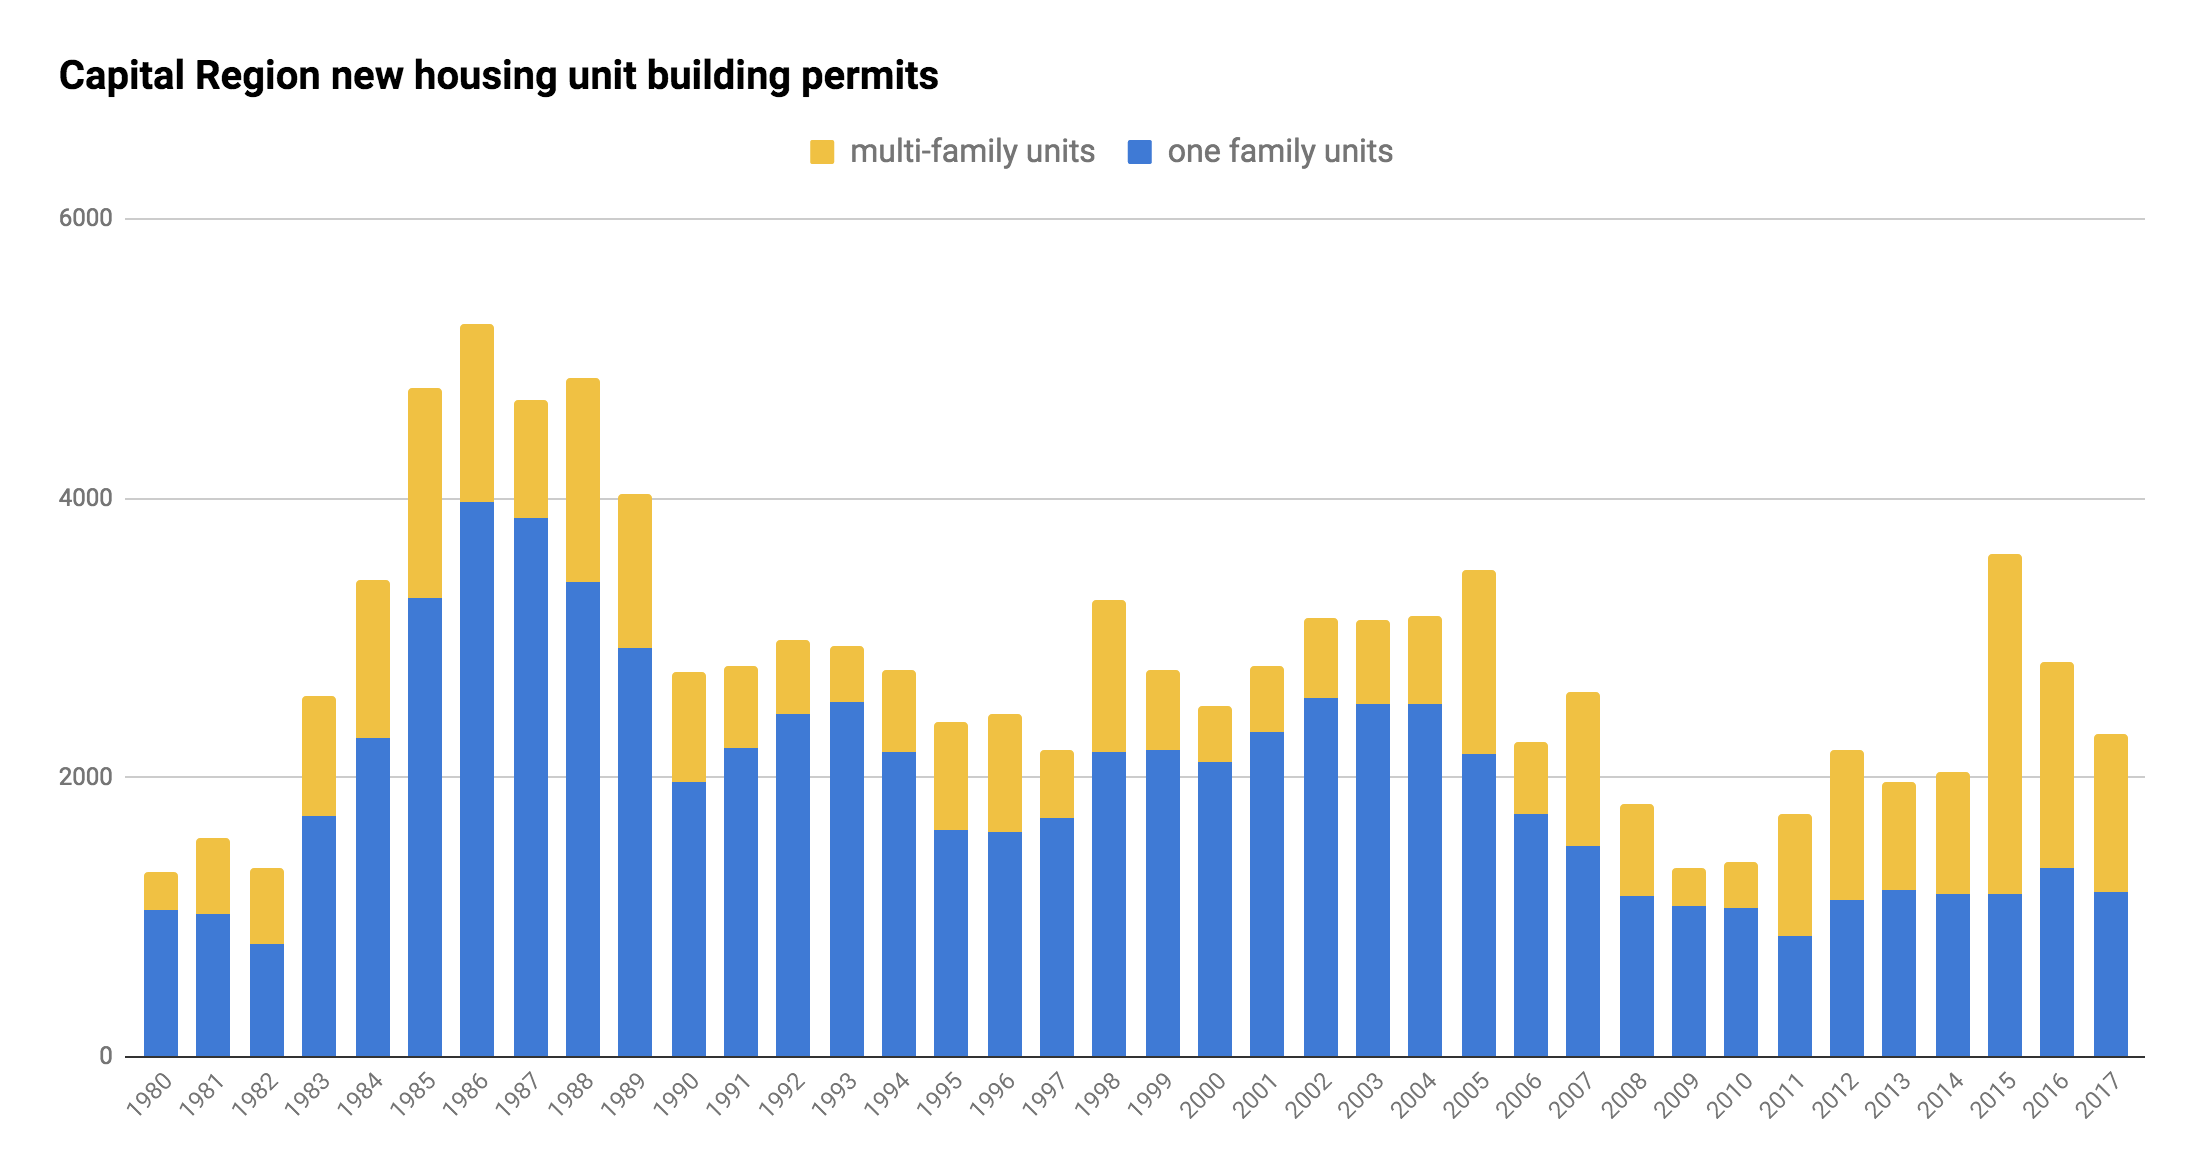 Capital_Region_building_permit_residential_units_single_and_multi_1980-2017.png